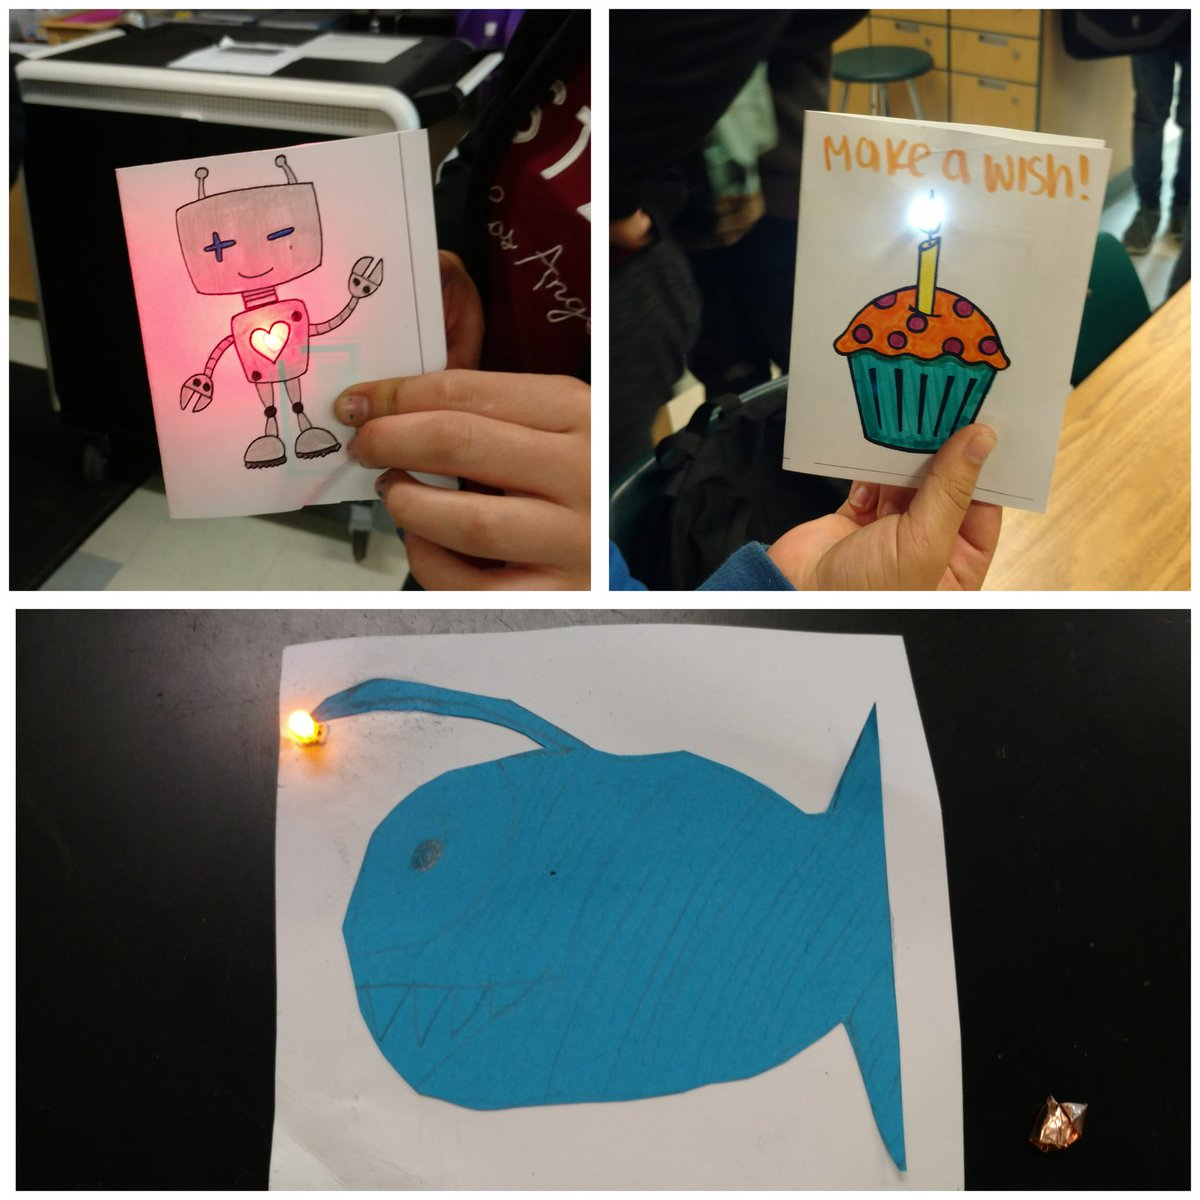 @chmscoyotes designed LED paper circuit cards today inspired by #exploratorium #tinkeringstudio &#39;s book #theartoftinkering! <br>http://pic.twitter.com/9rNo22d5dH